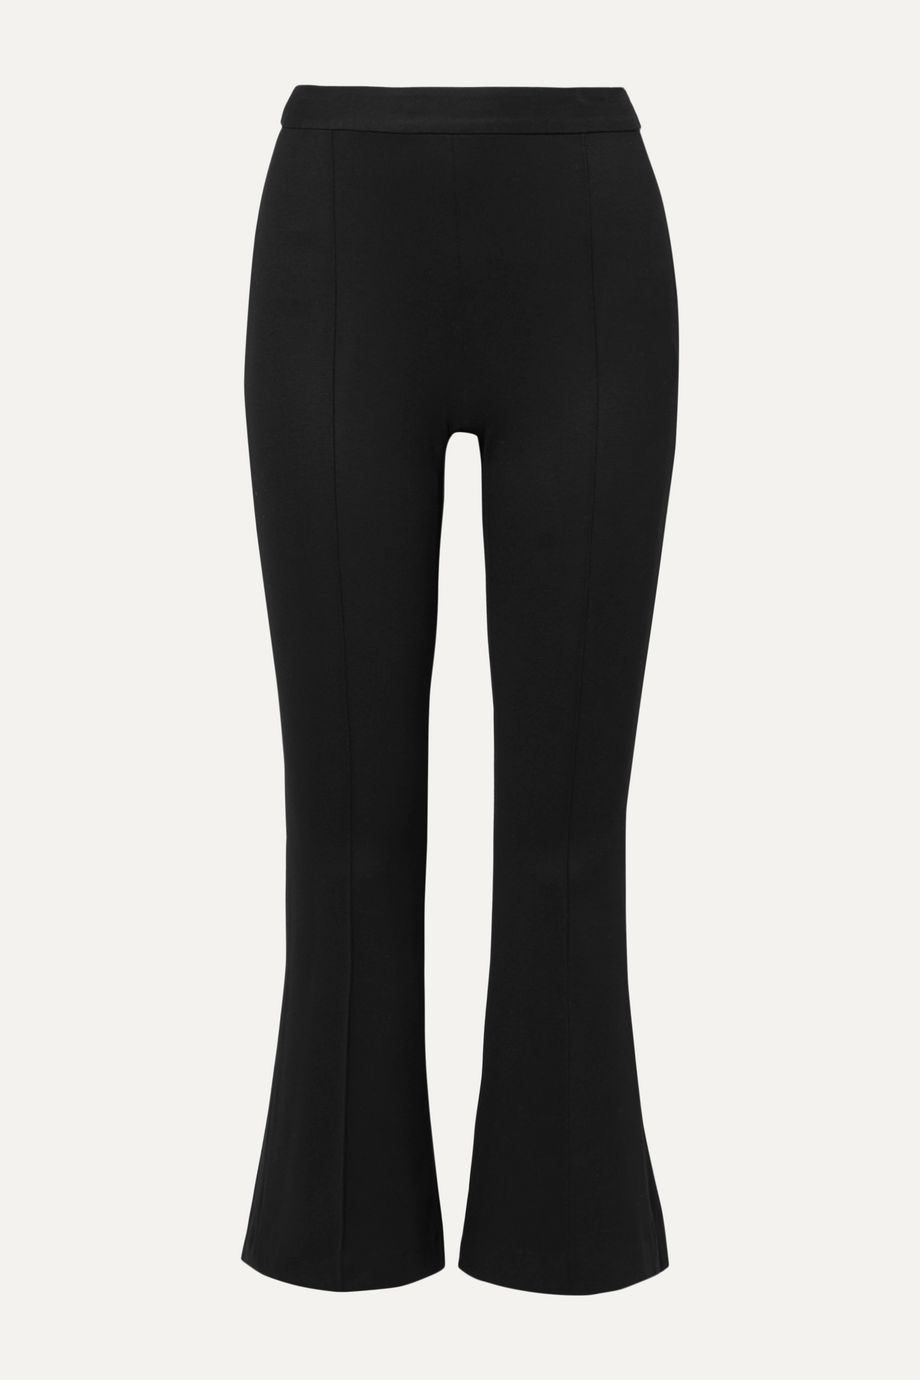 Rosetta Getty Cropped stretch-jersey flared pants